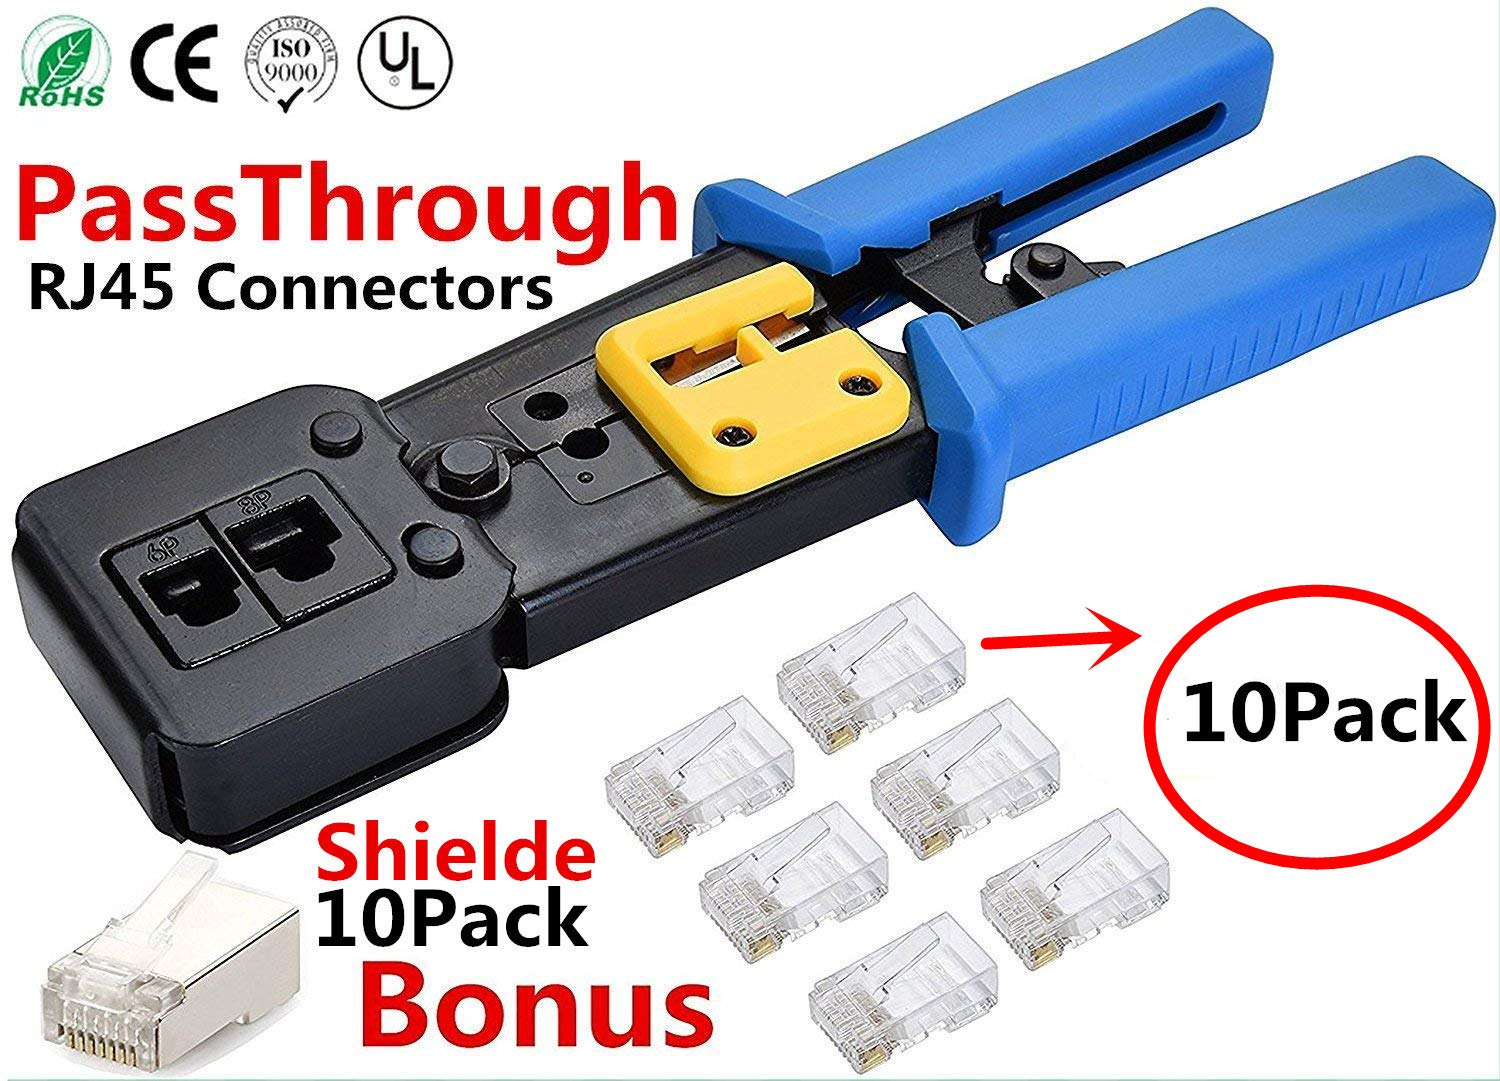 RJ45 Crimp Tool for Pass through and legacy connectorsProfessional High Performance Crimper Tool by Ethernet Connector for pass through and legacy connectors Bonus CAT6 Connector 20 Pack